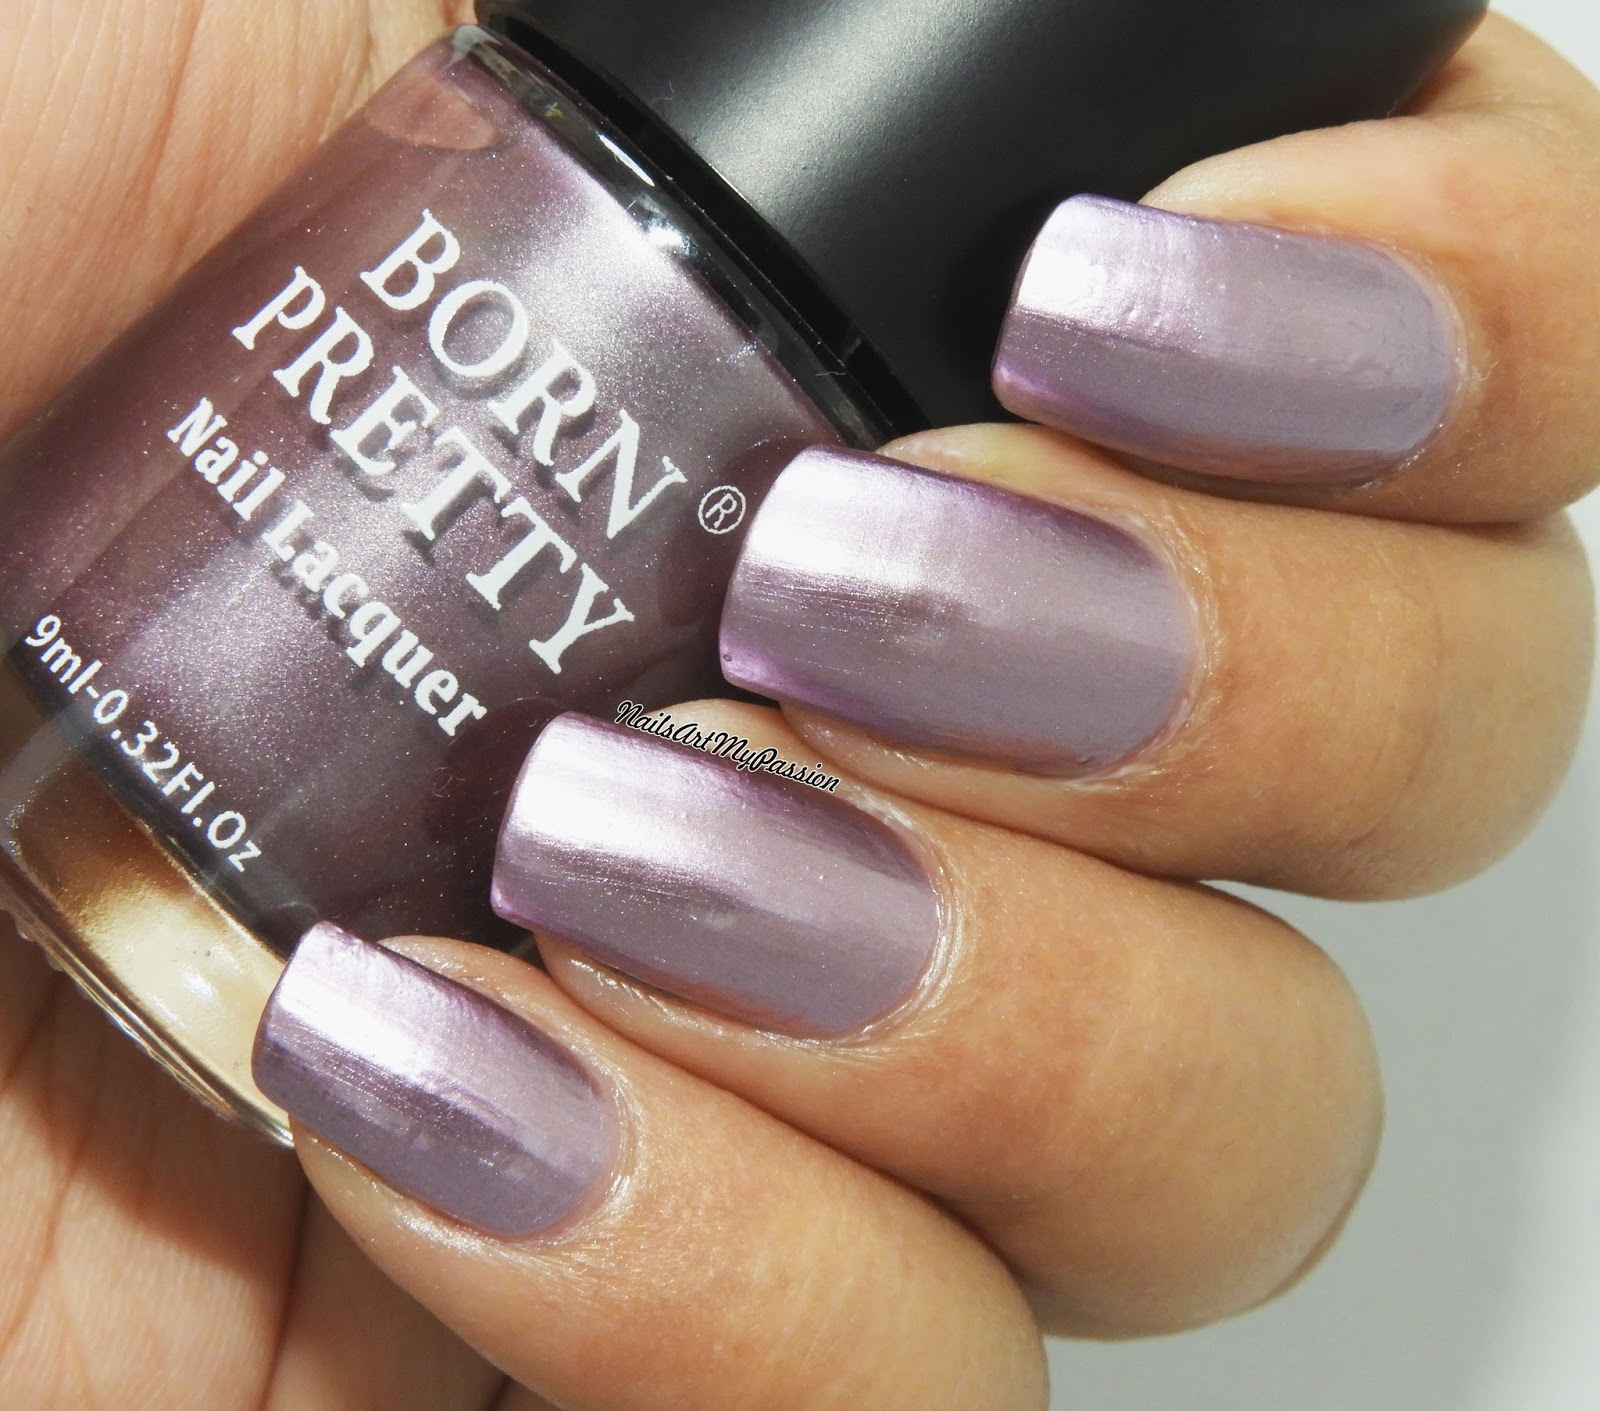 Born Pretty Metallic B505 Heroine Is A Very Light Purple Or Lavender Polish The Shade Almost Opaque In One Coat